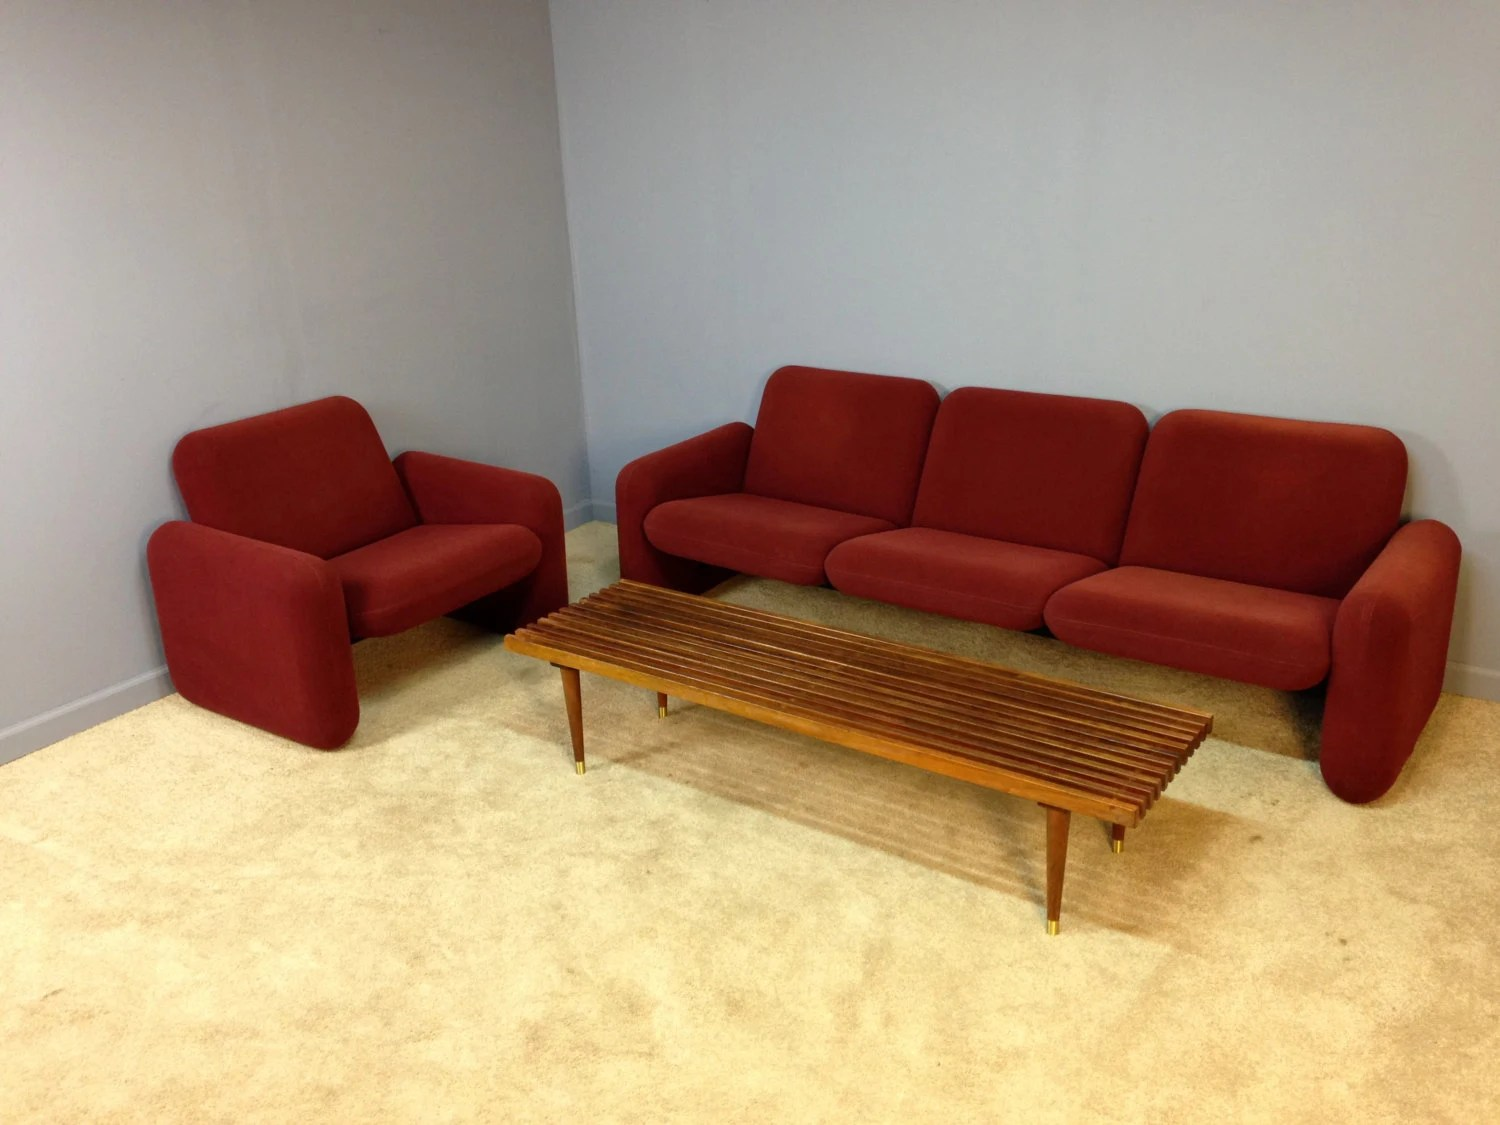 herman miller modular sofa leather shop near me sale price vintage ray wilkes for